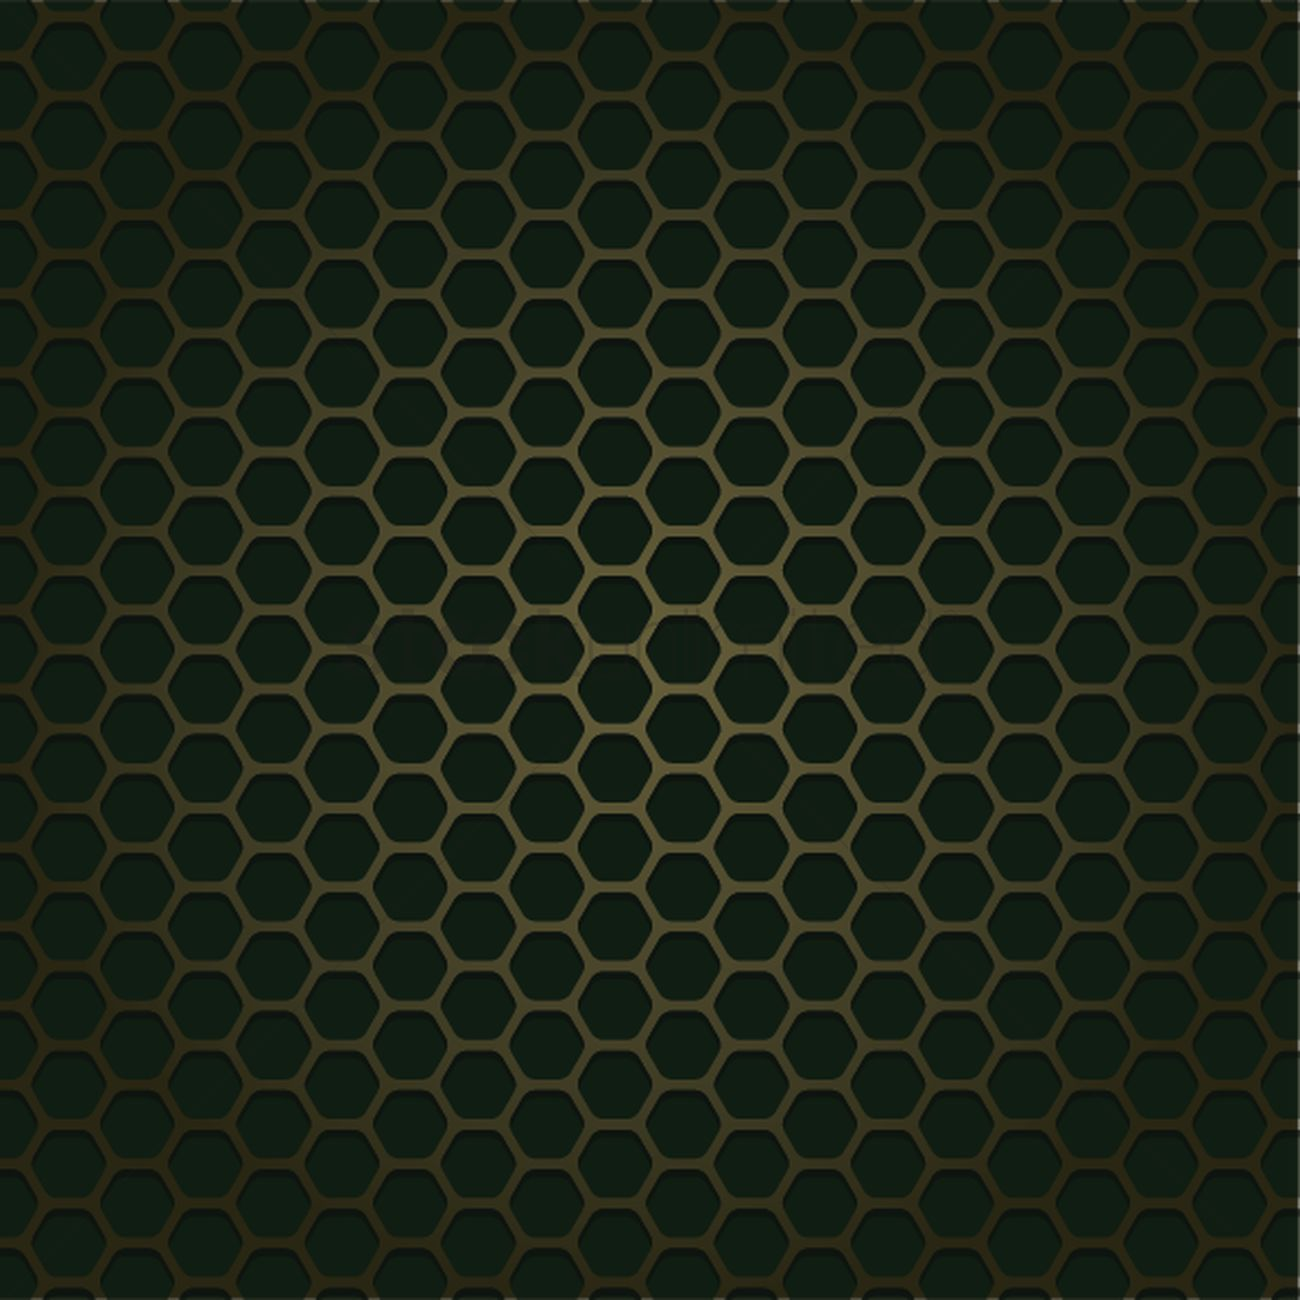 Seamless honeycomb background vector image 1442199 stockunlimited seamless honeycomb background vector graphic voltagebd Image collections